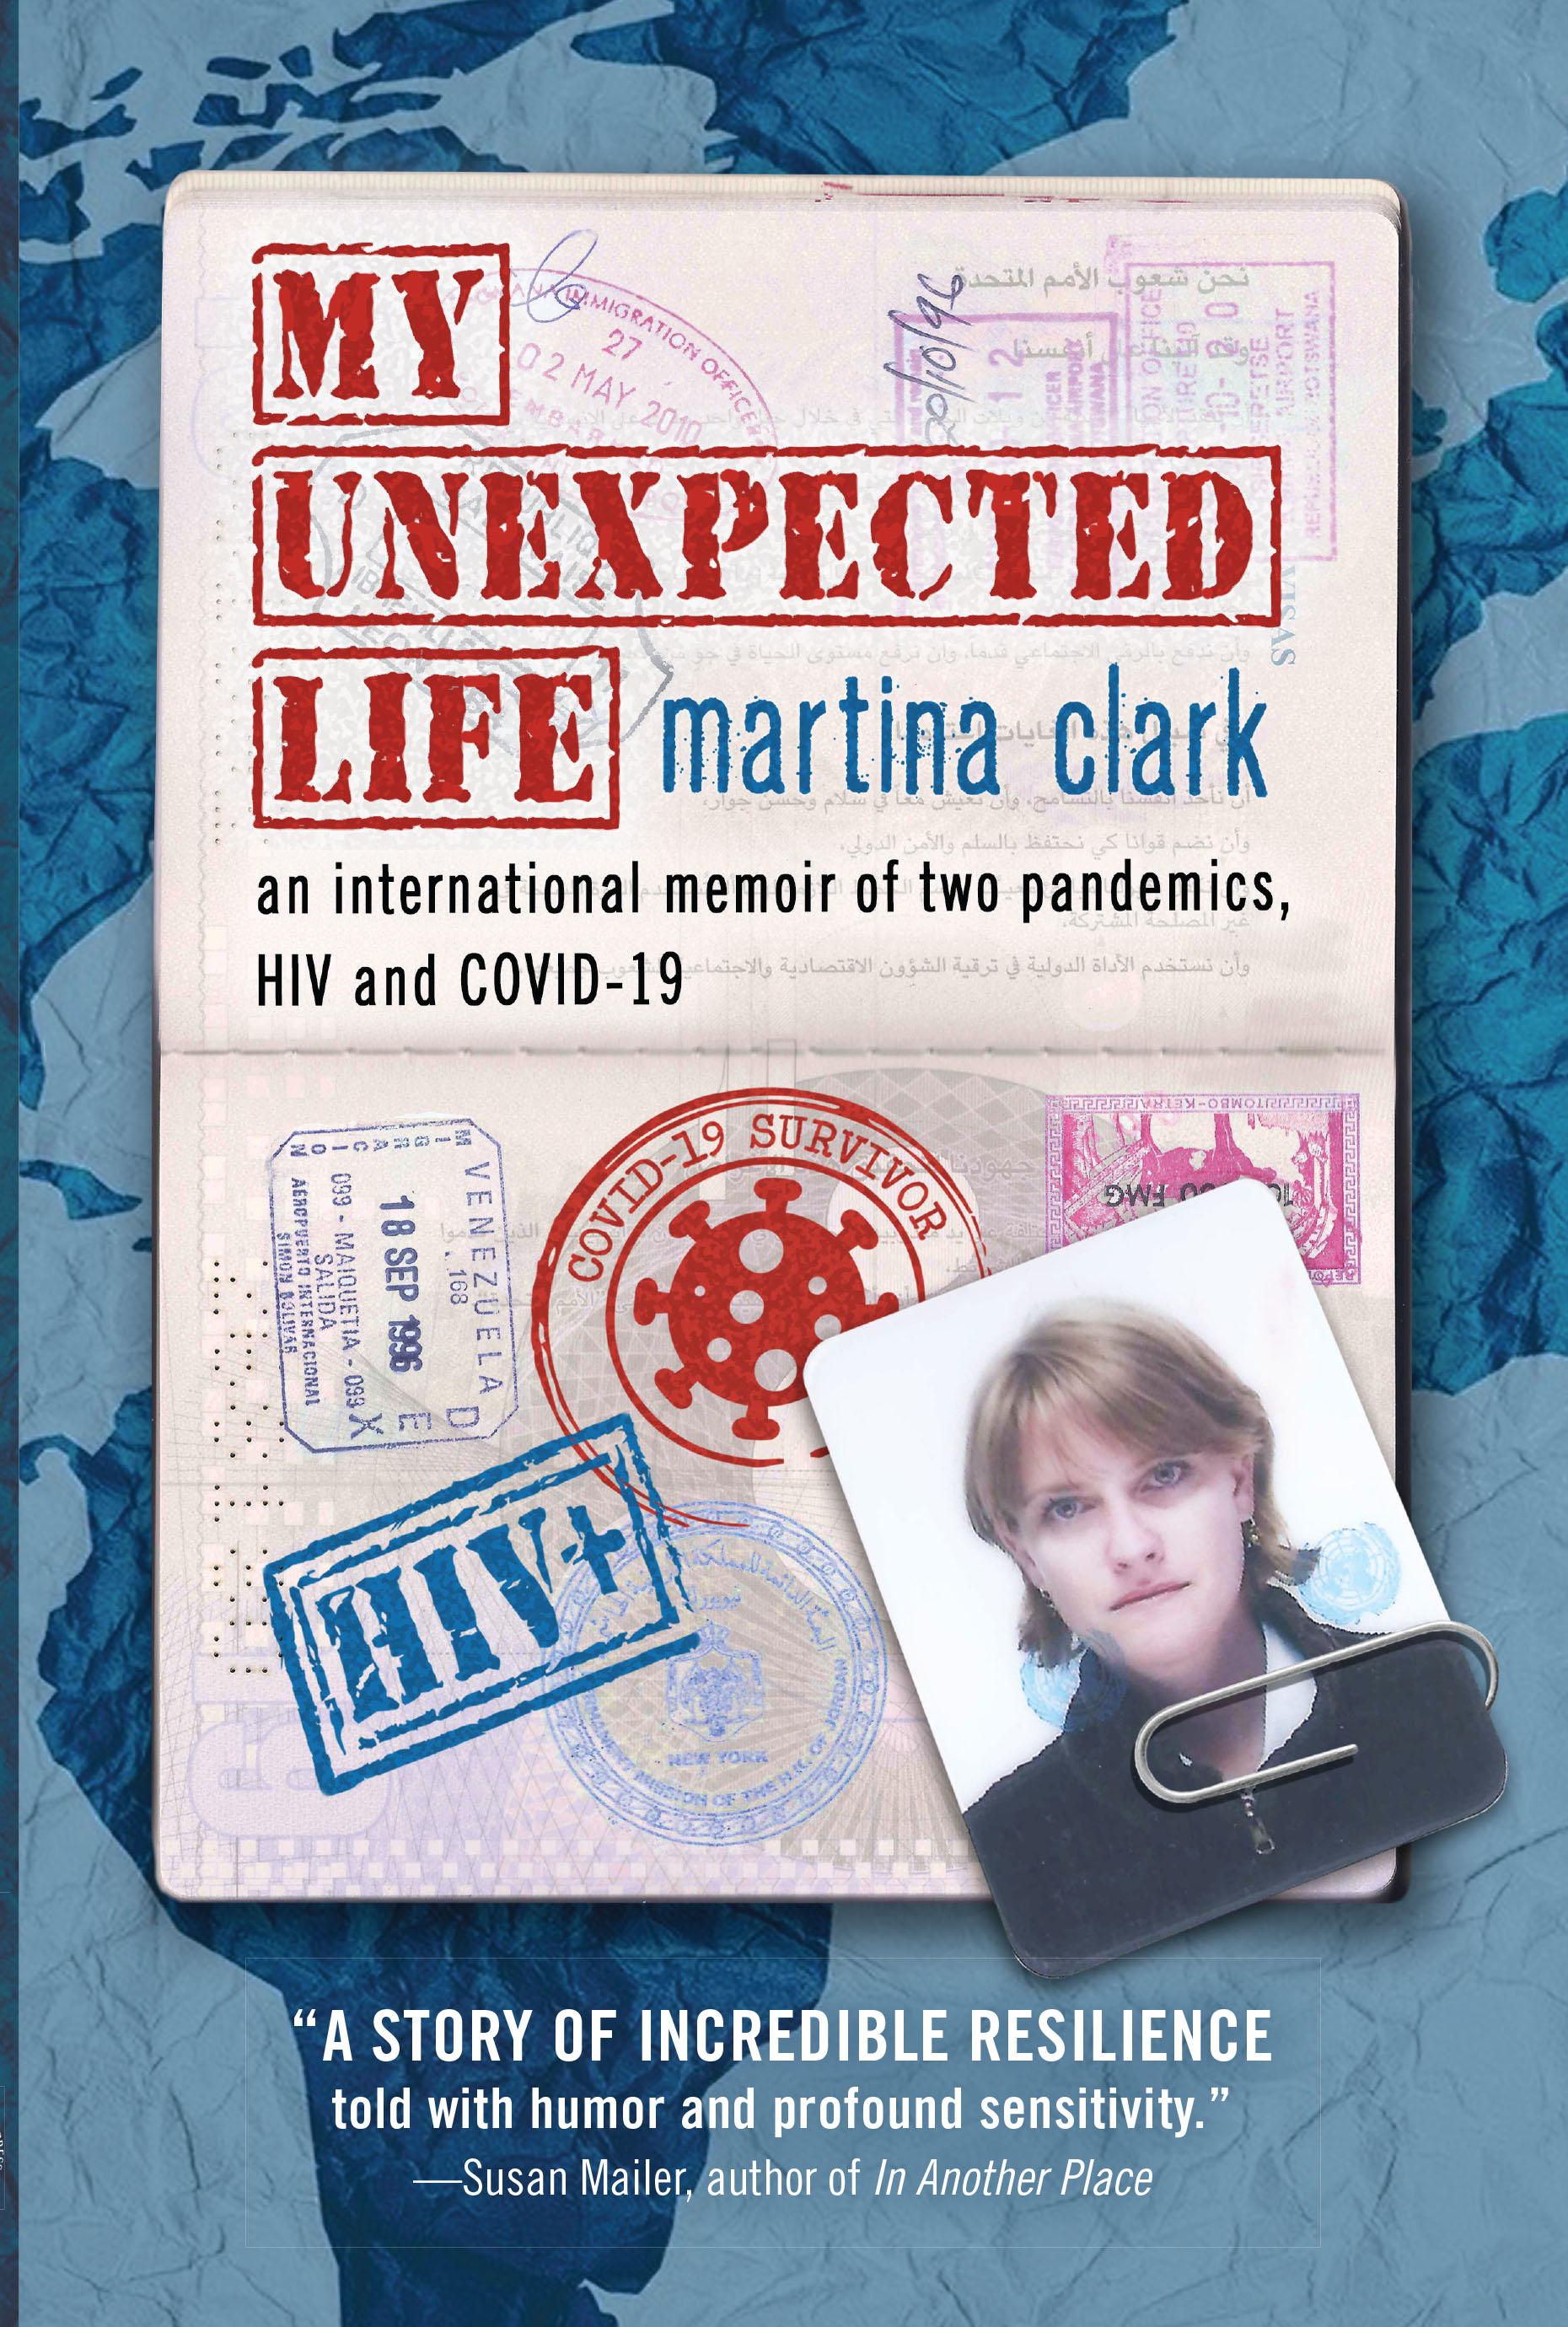 My Unexpected Life full cover spread 8-23-21.indd